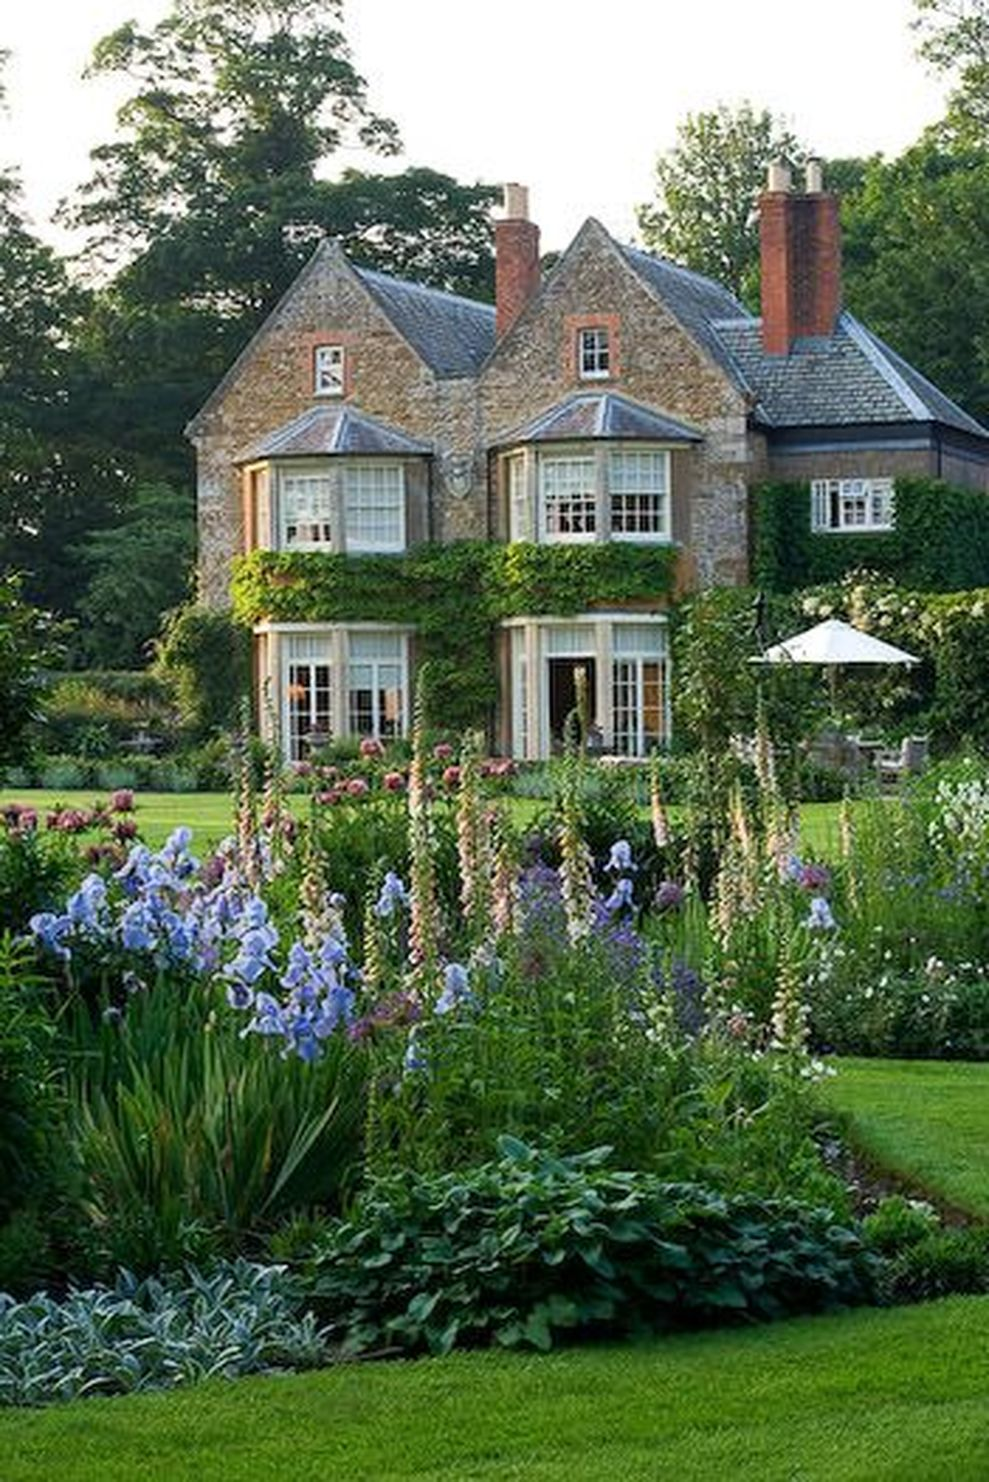 Beautiful french cottage garden design ideas 19